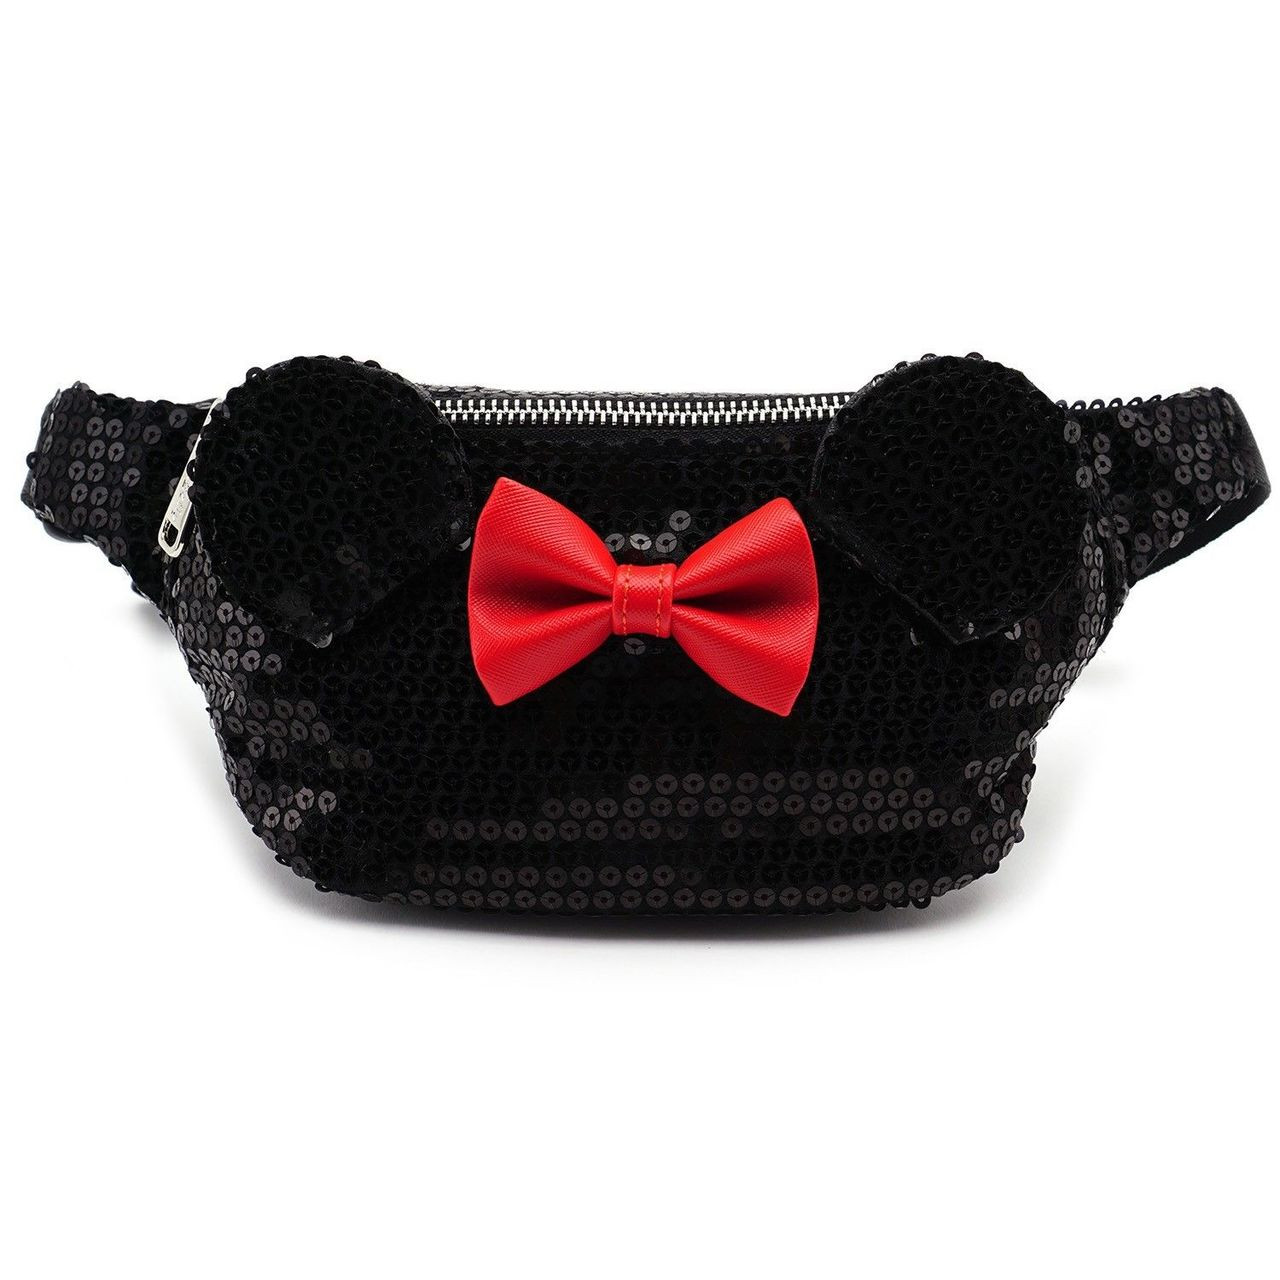 Loungefly Disney Minnie Mouse Sequins Faux Leather Fanny Pack Purse  WDTB1416 - Fearless Apparel 72876e3dcc739